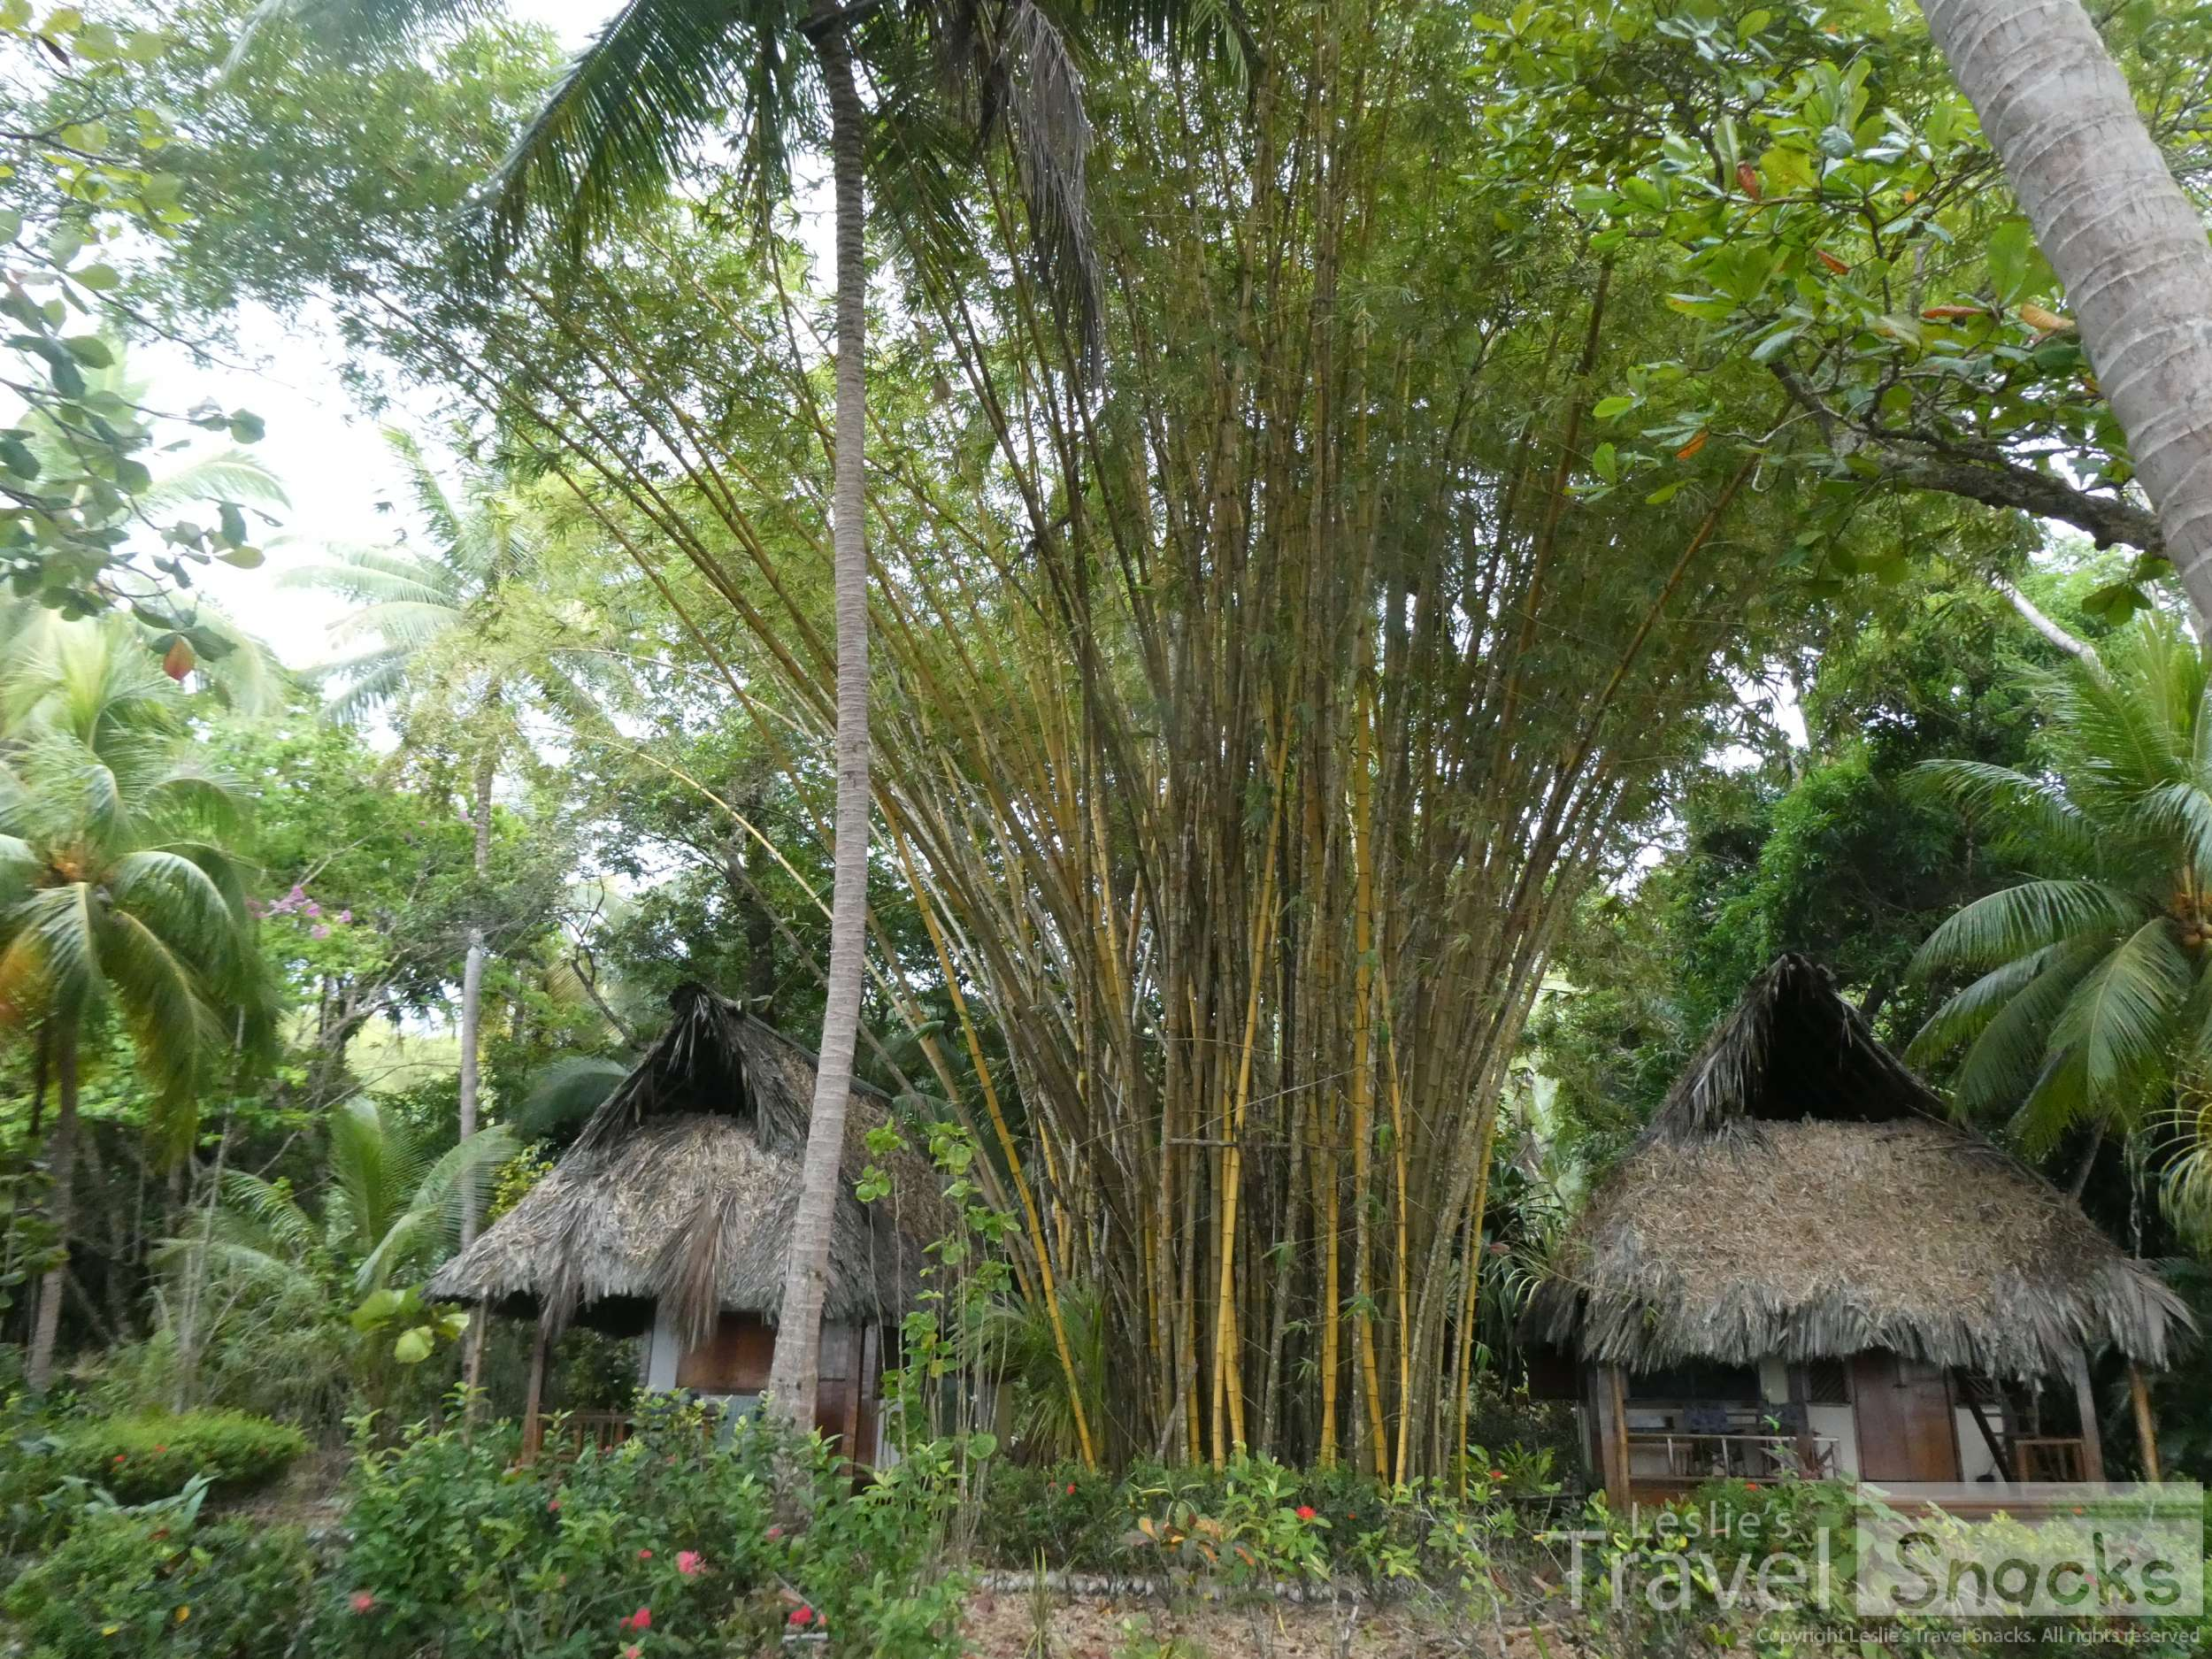 The two neighboring cabins to my right. Awesome huge bamboo.